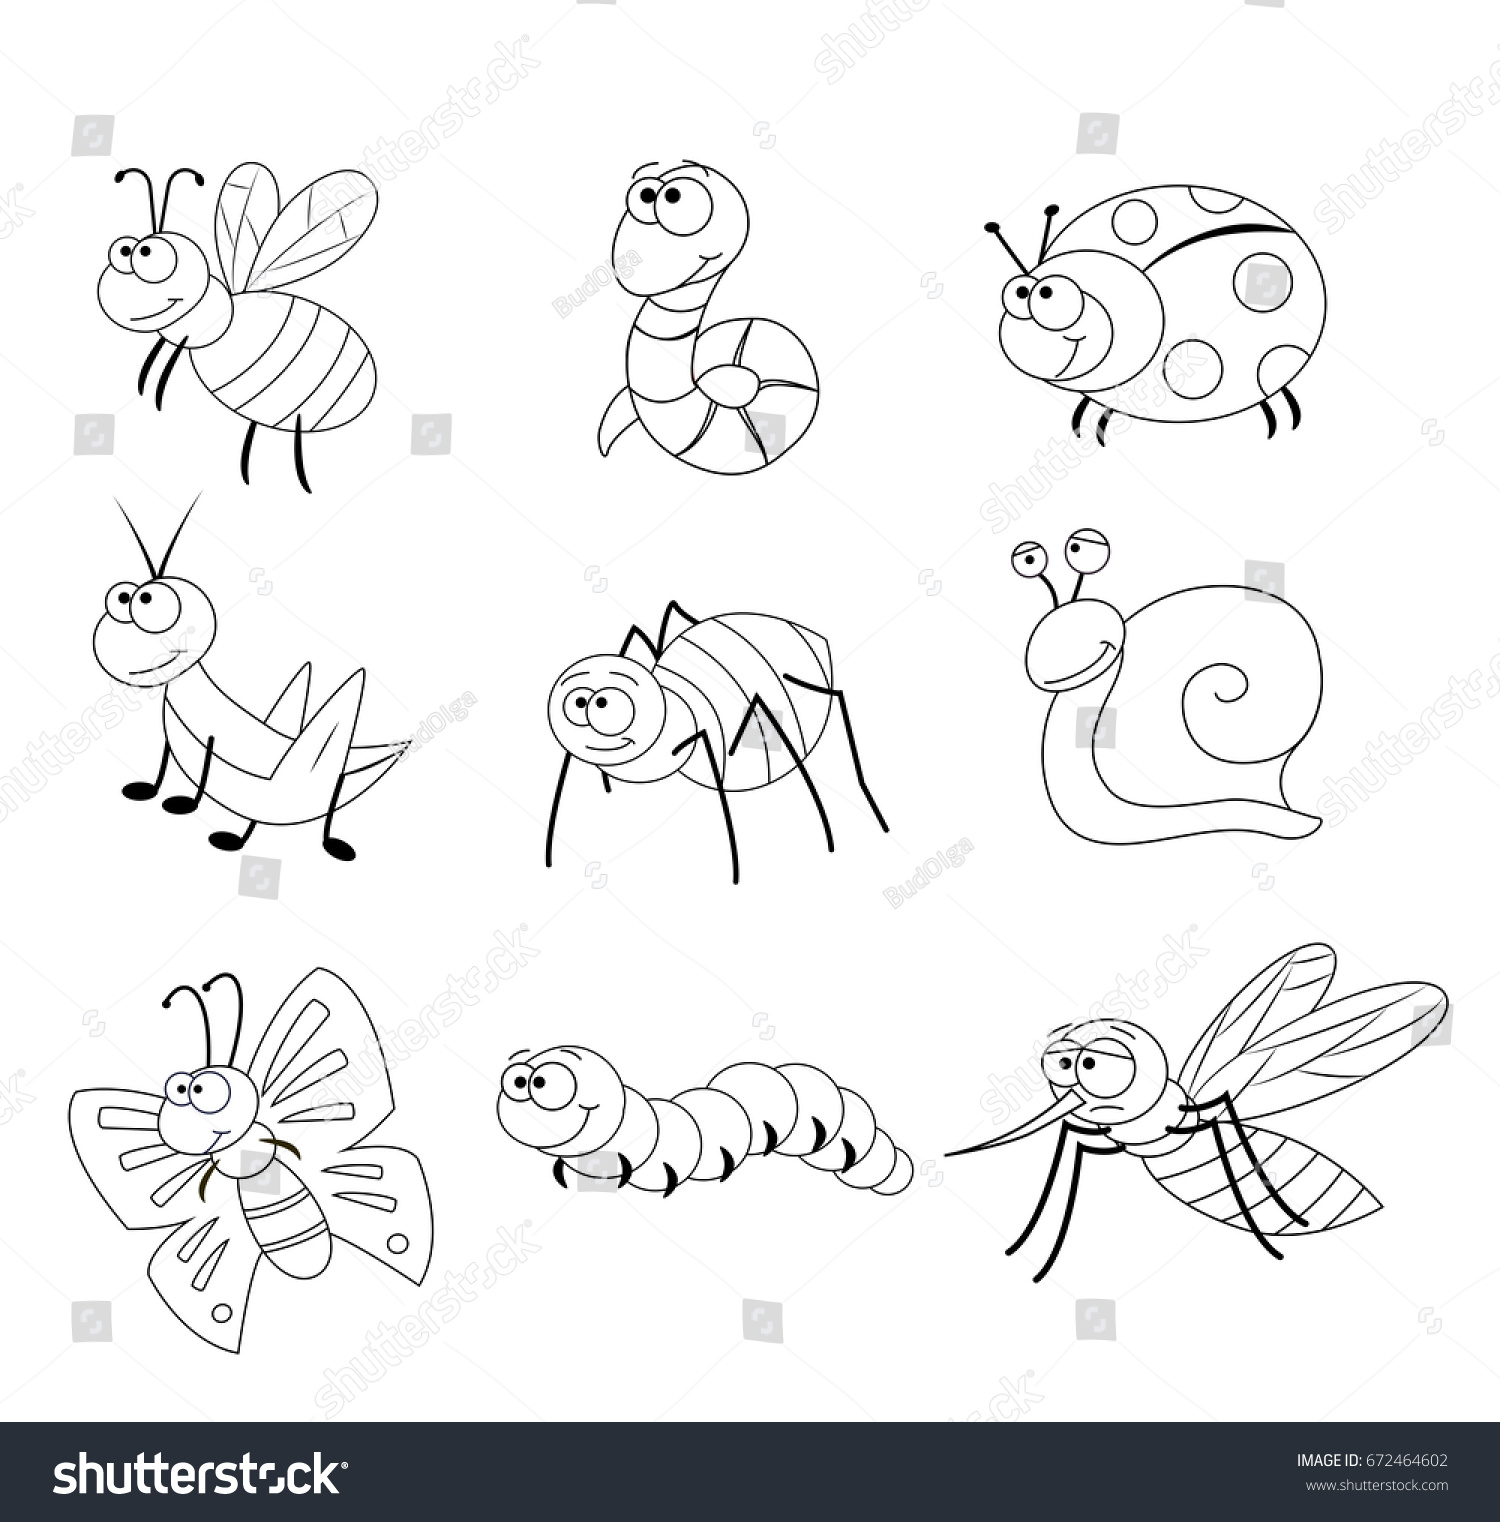 Worksheet For Preschoolers Bugs Bees Butterflies